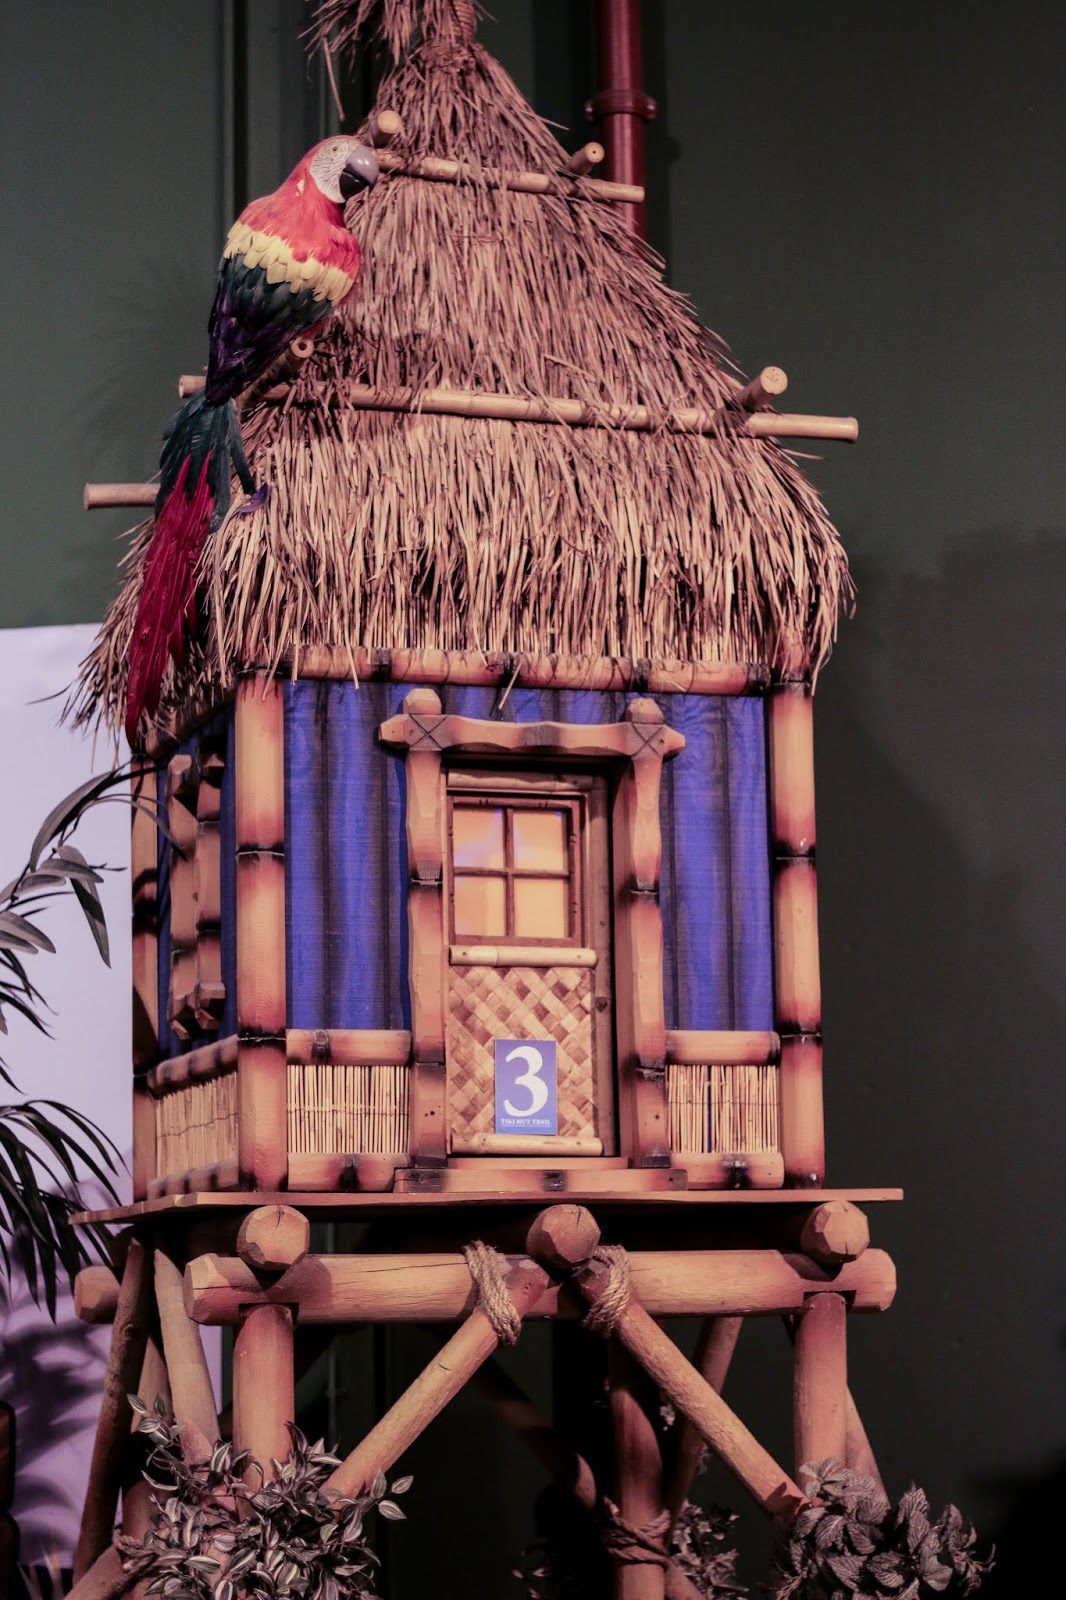 a fake tiki hut that has a fake parrot perched on top of it at hole 3 in the golf course